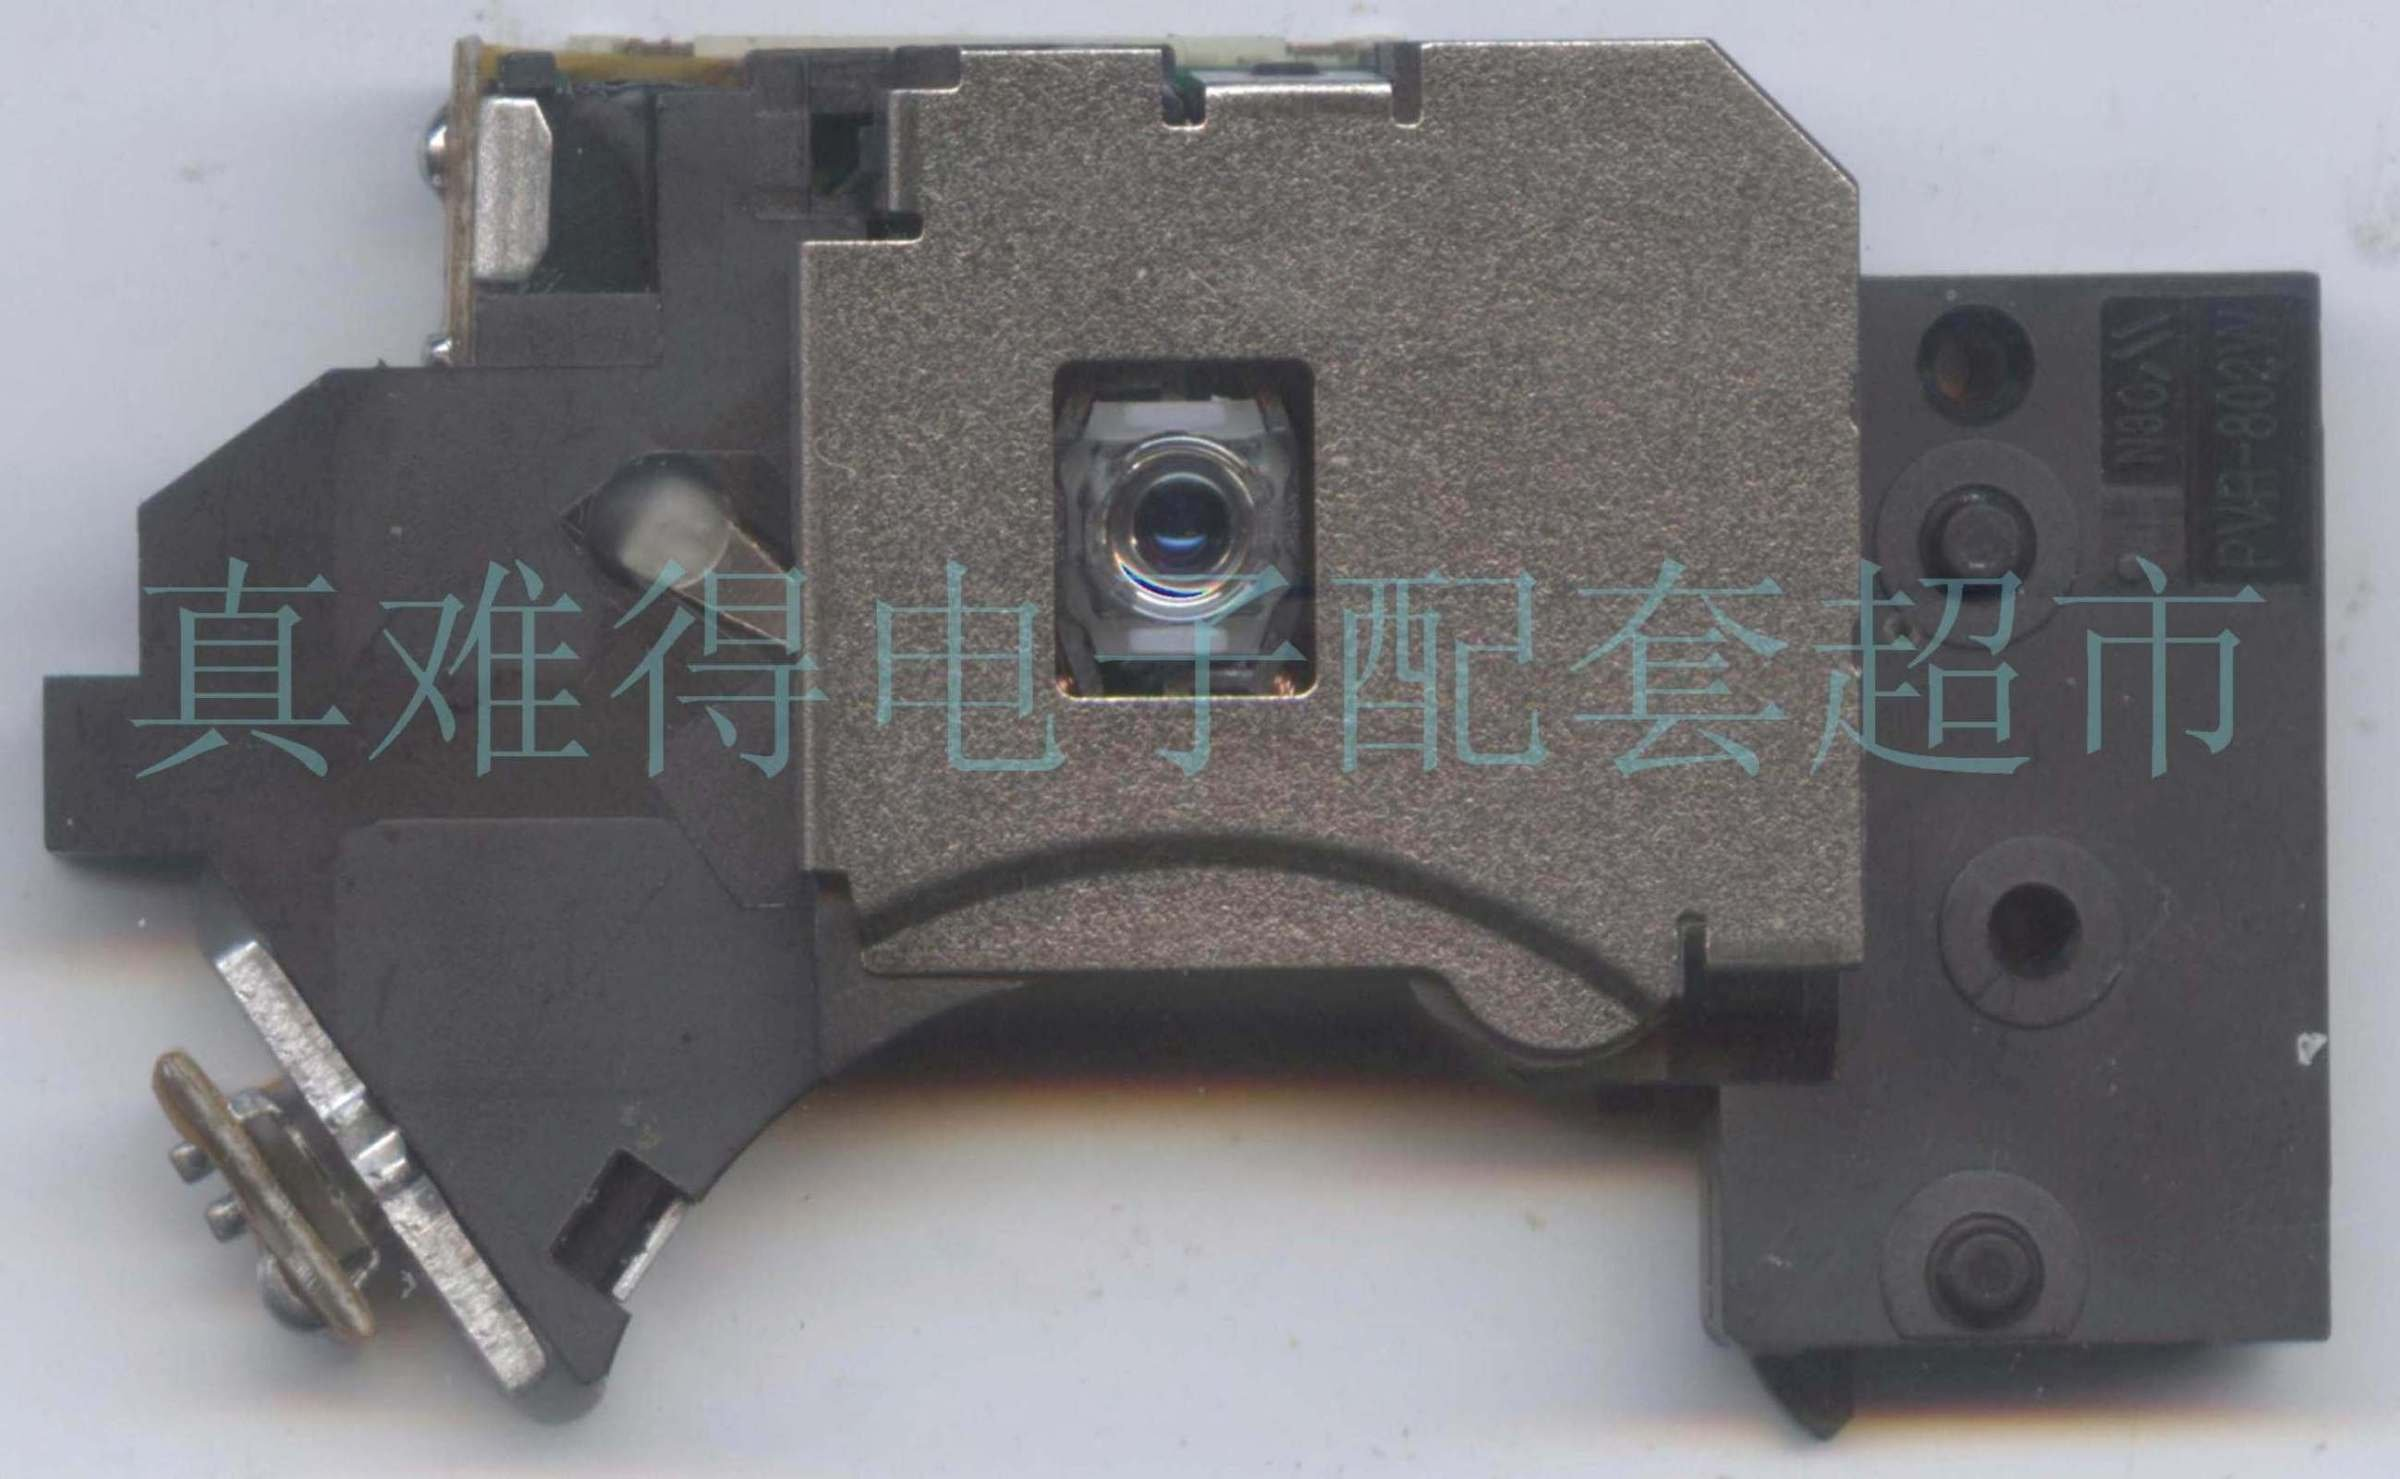 PVR802W laser lens for PlayStation 2, DVD/(China (Mainland))